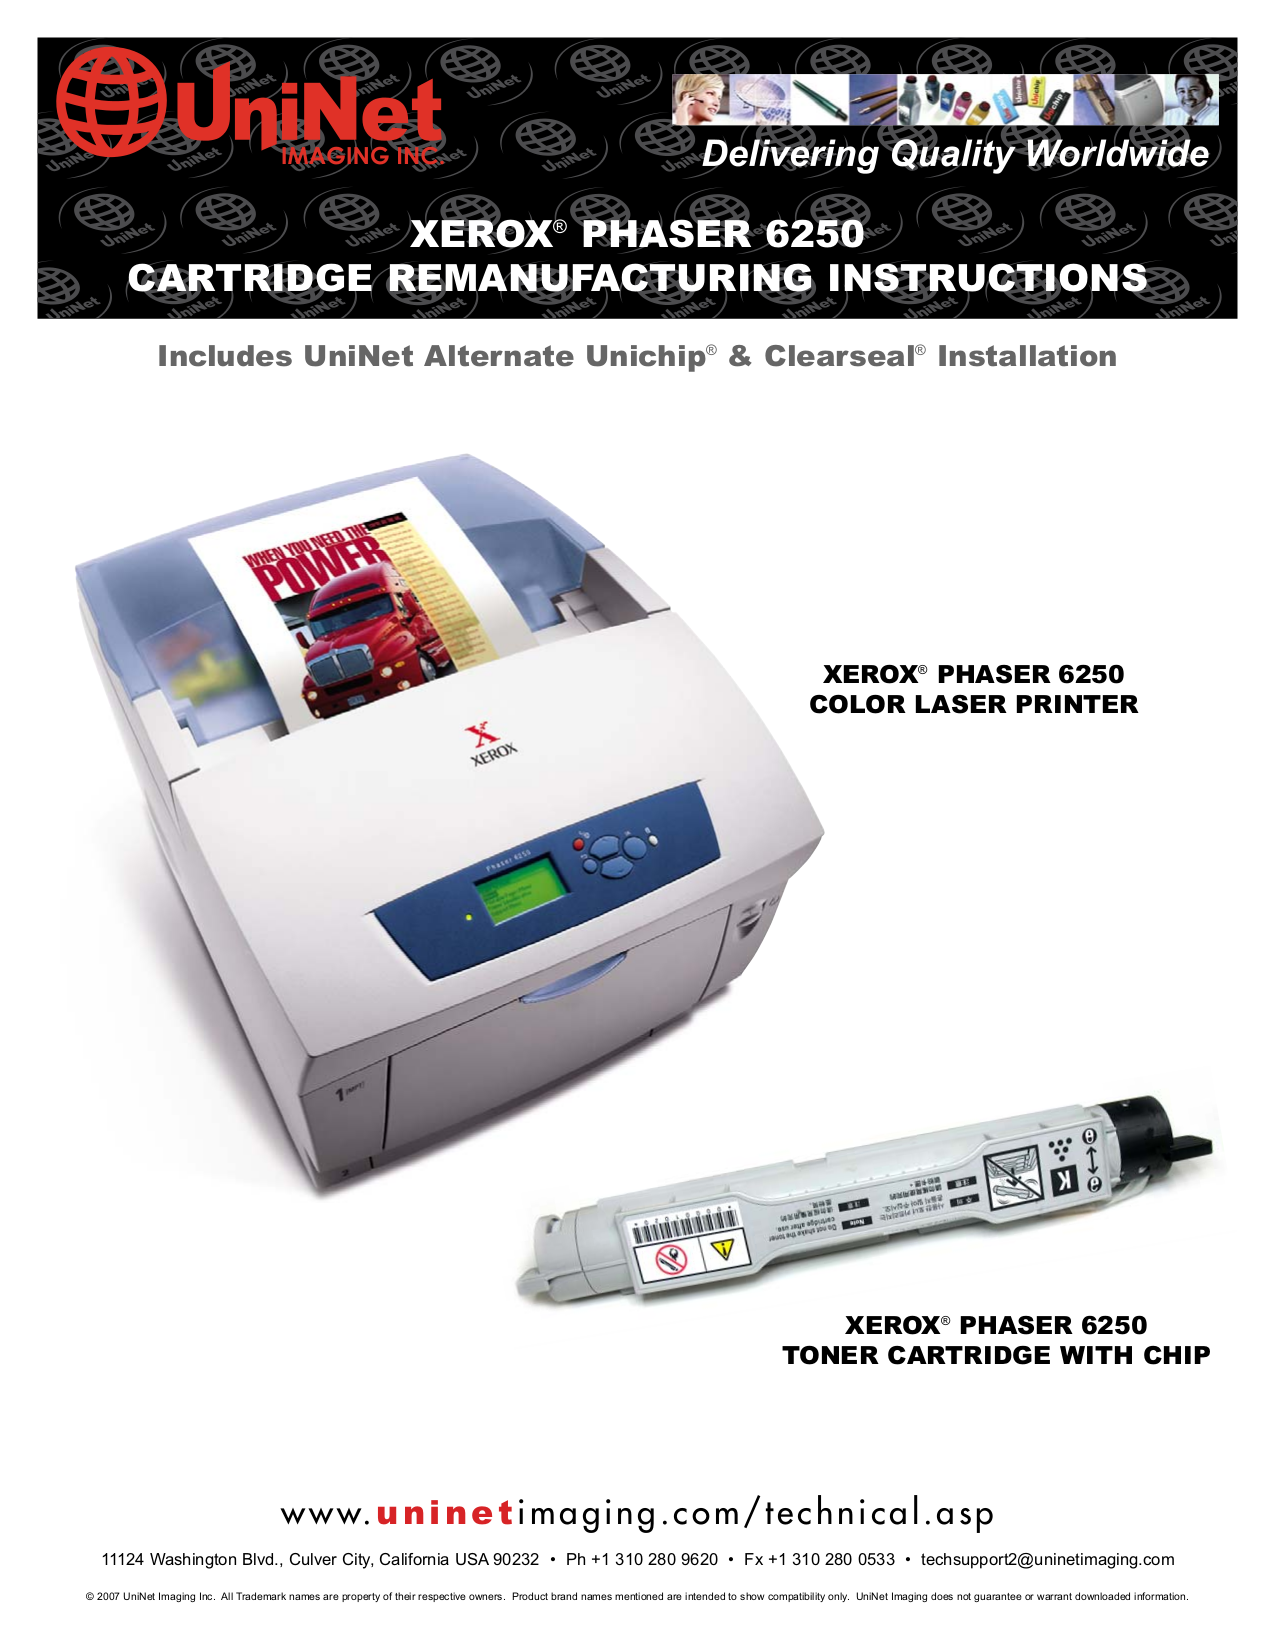 pdf for Xerox Printer Phaser 6250 manual